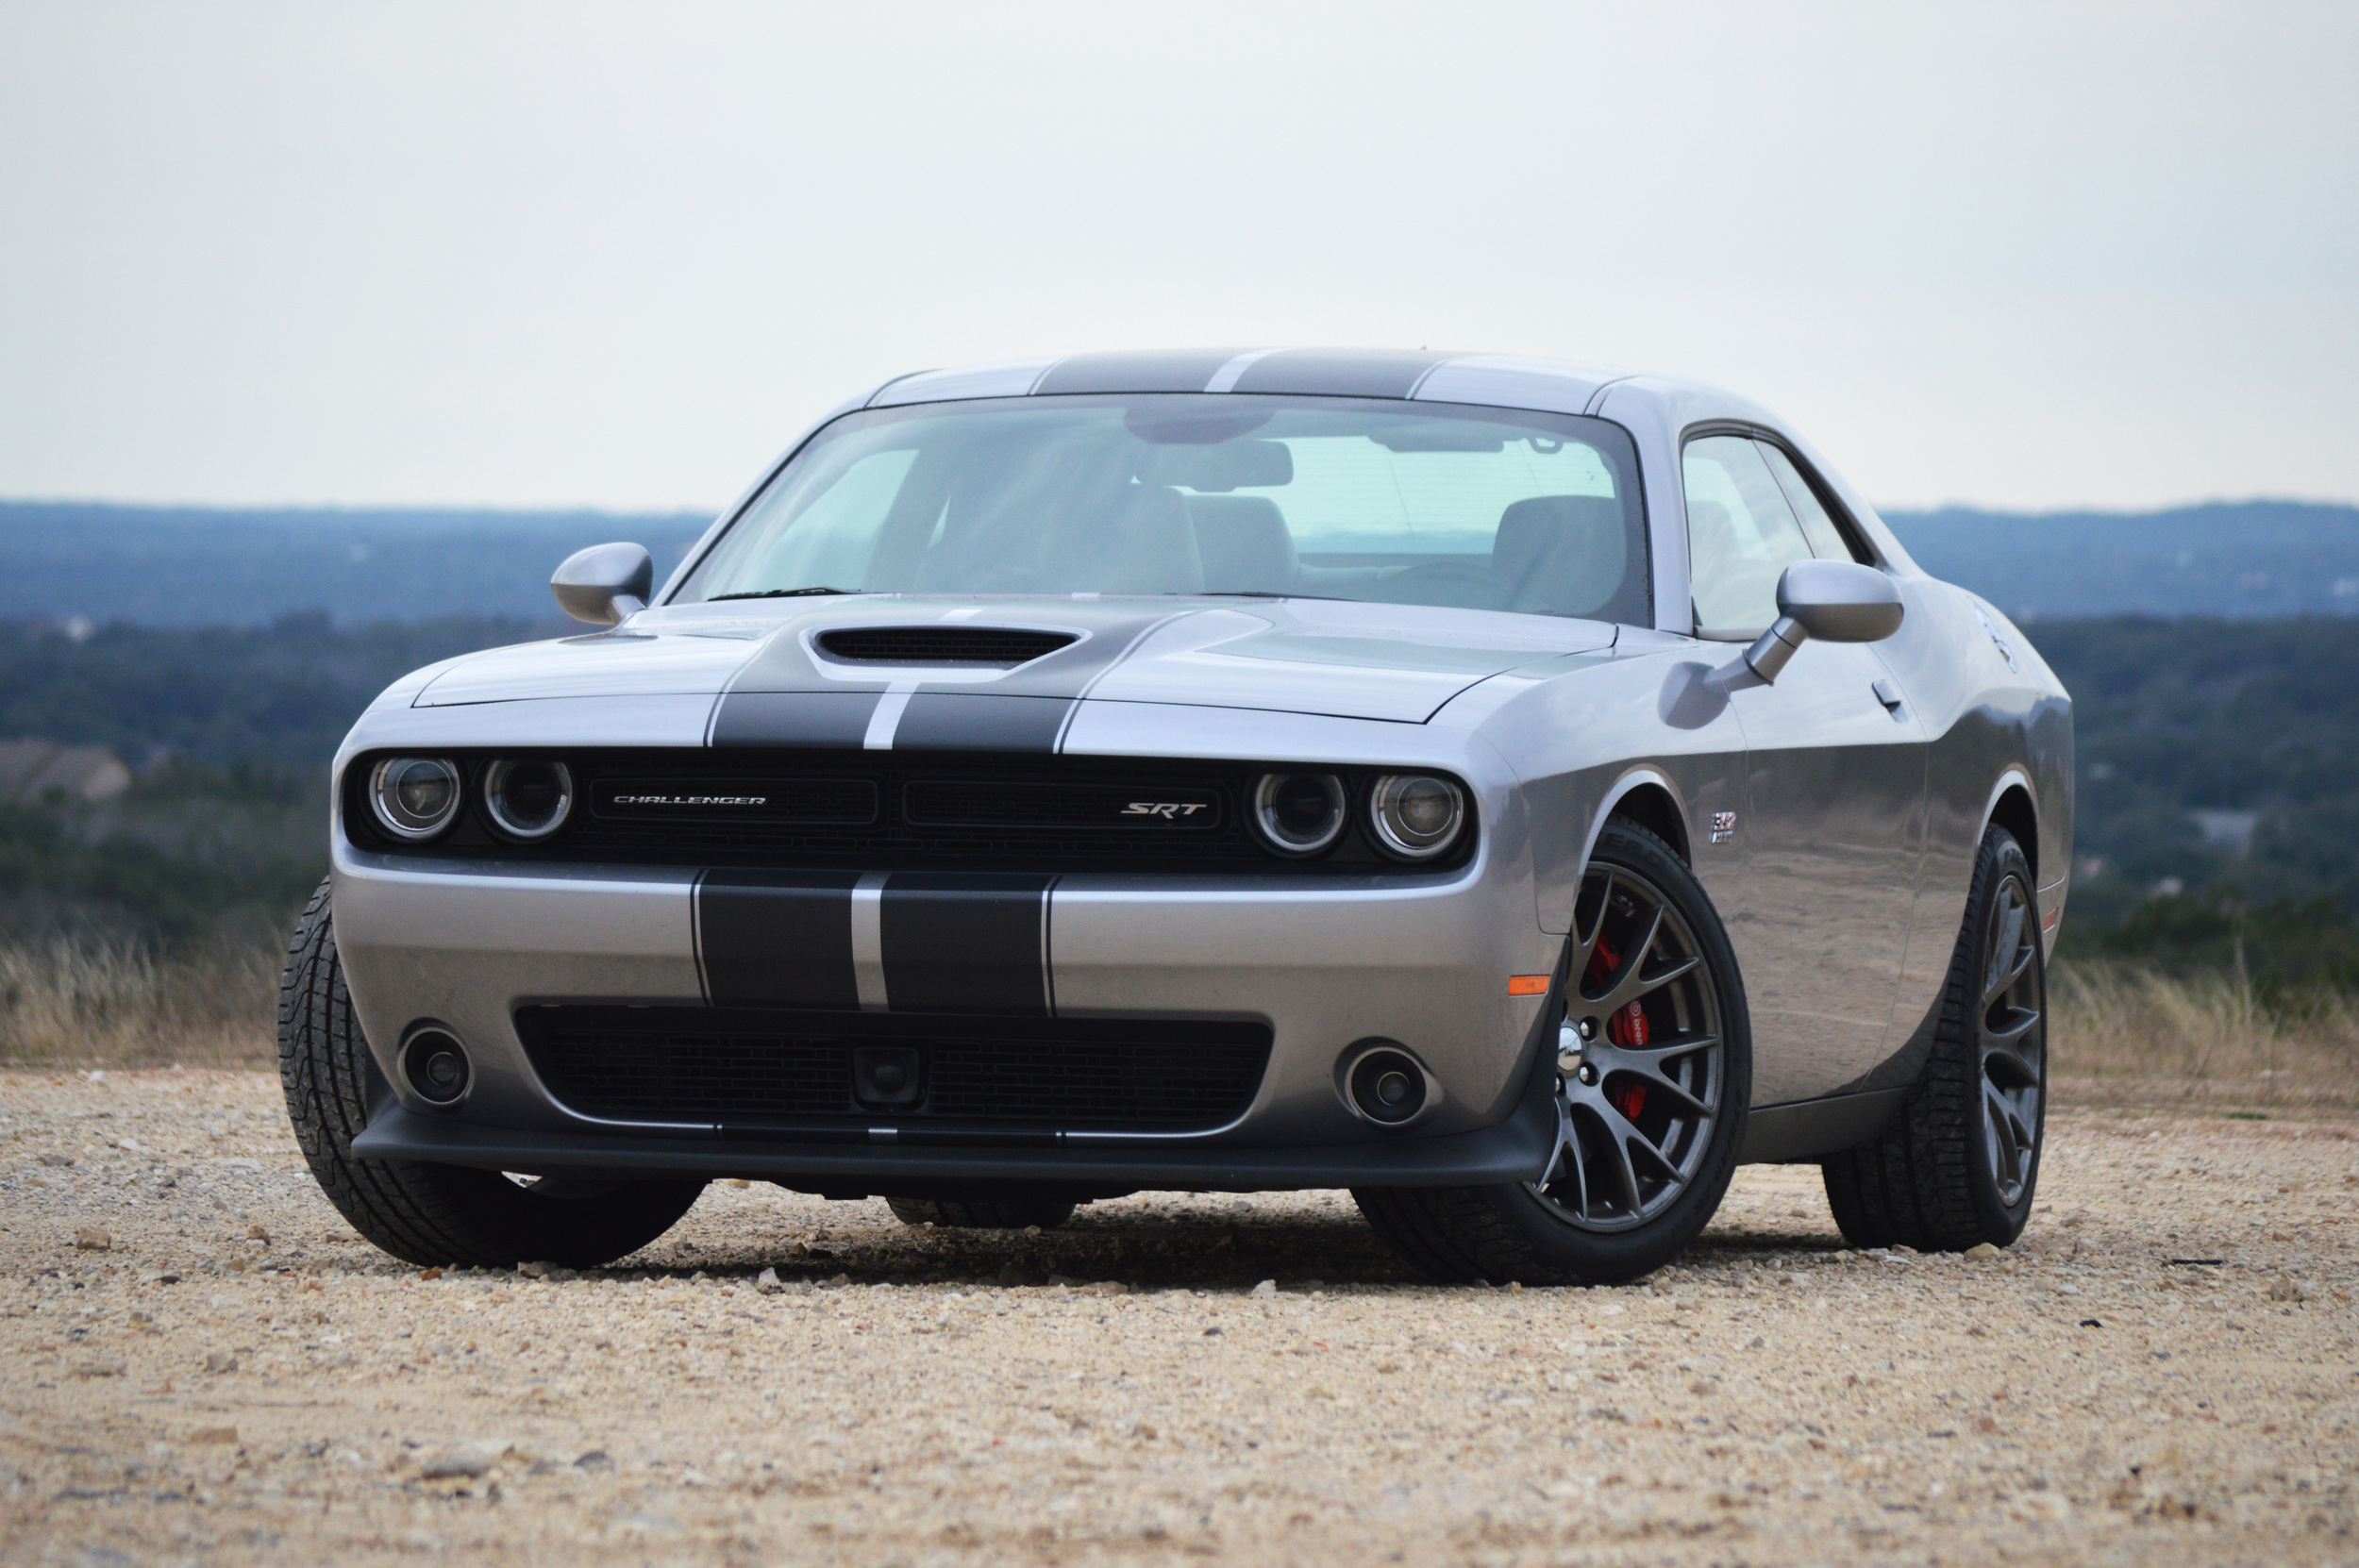 2016 Dodge Charger Srt 392 >> 2015 Dodge Challenger Srt 392 Autoblog